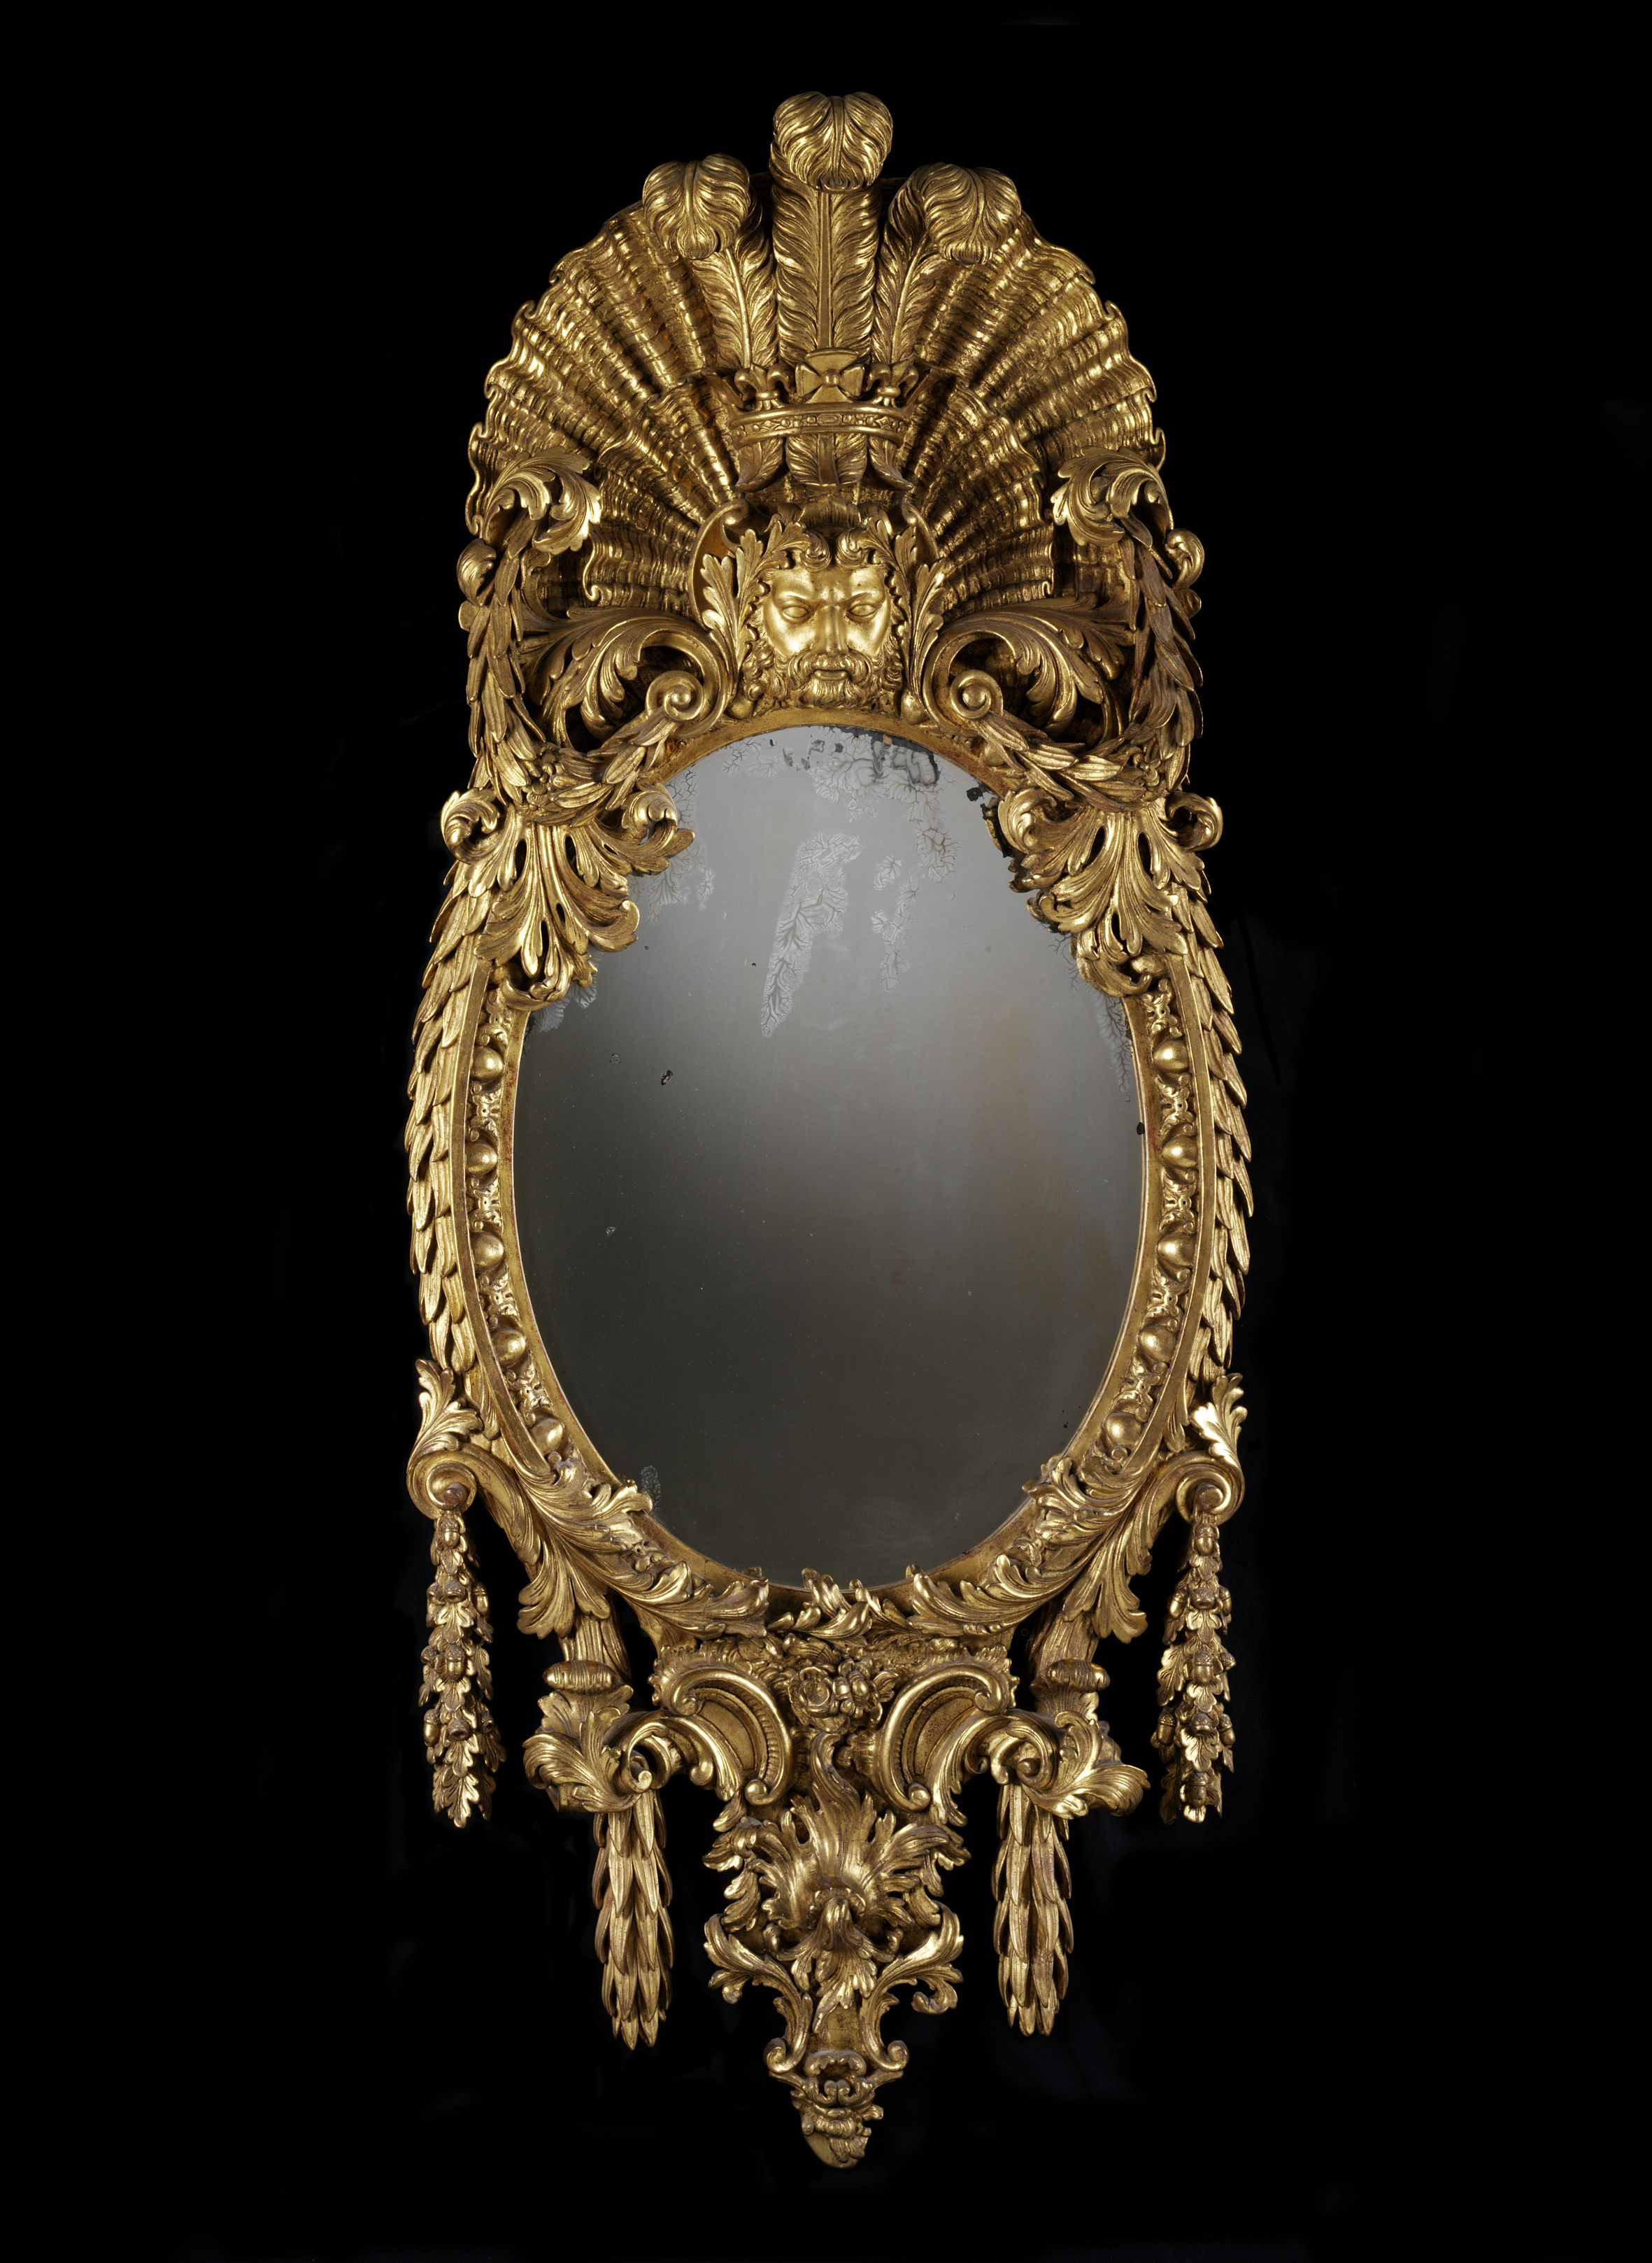 Mirror Attributed To William Kent, Probably For The White House,